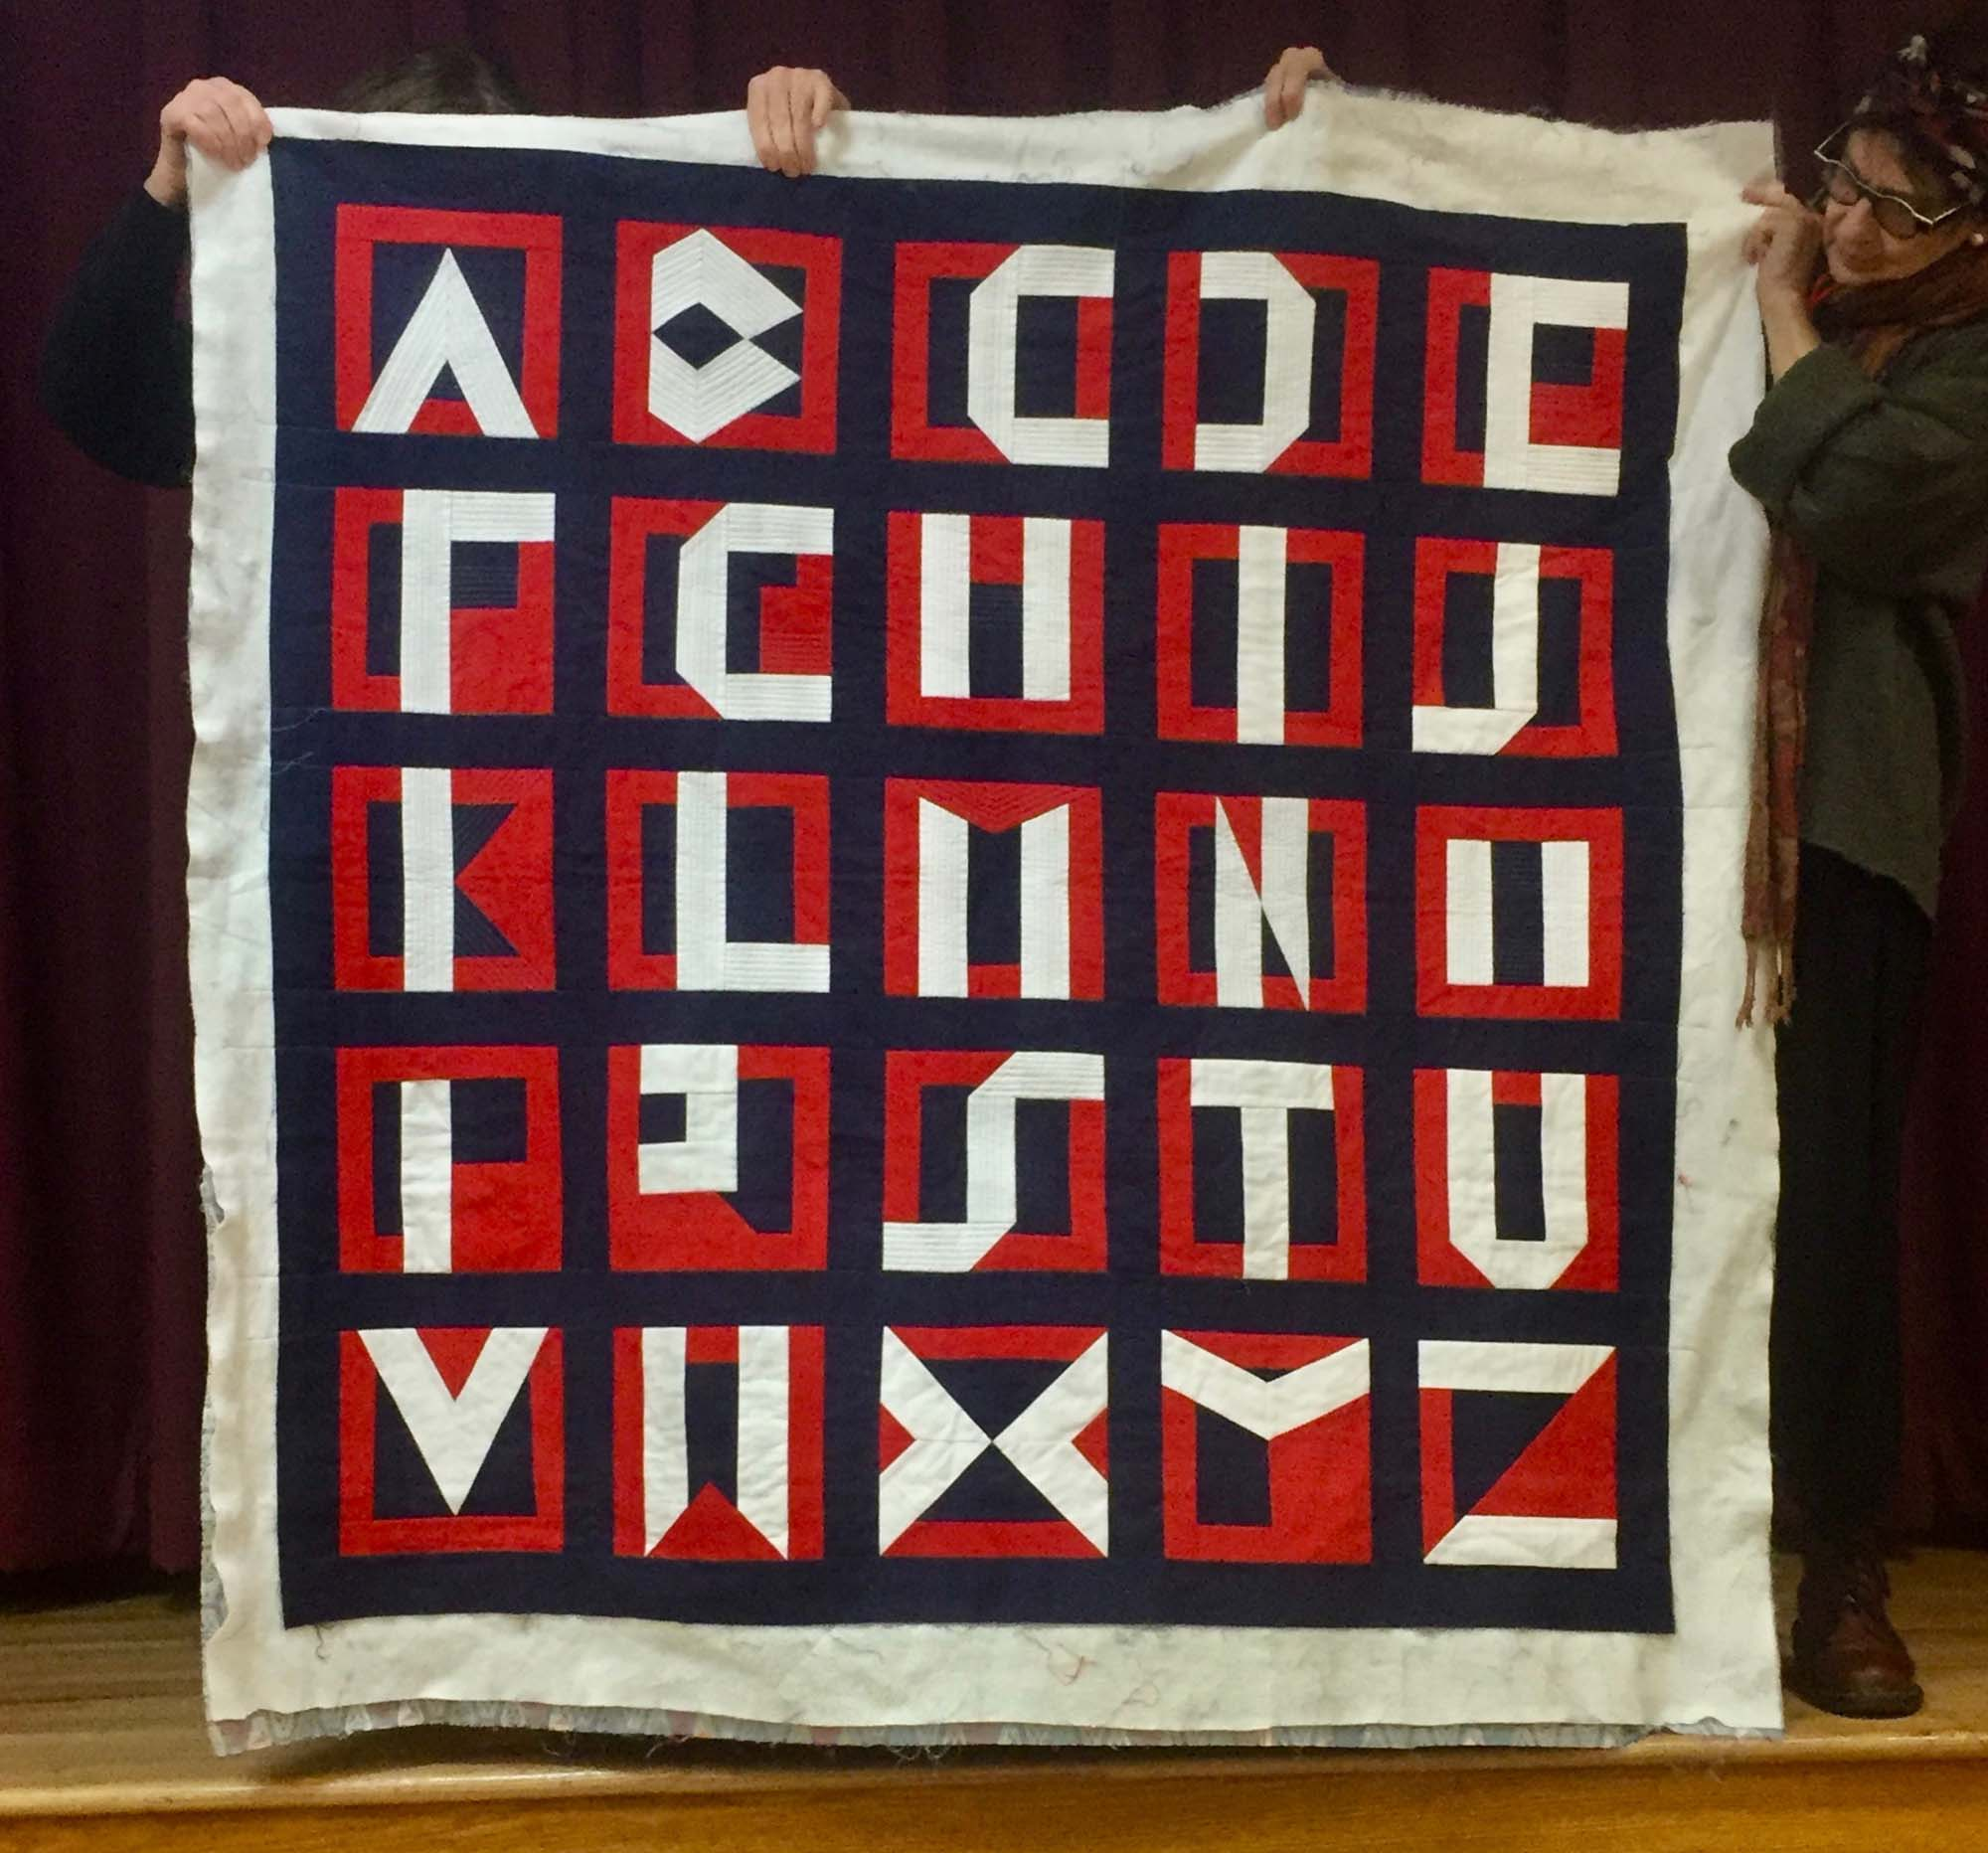 ABC quilt by Michael Sengstack